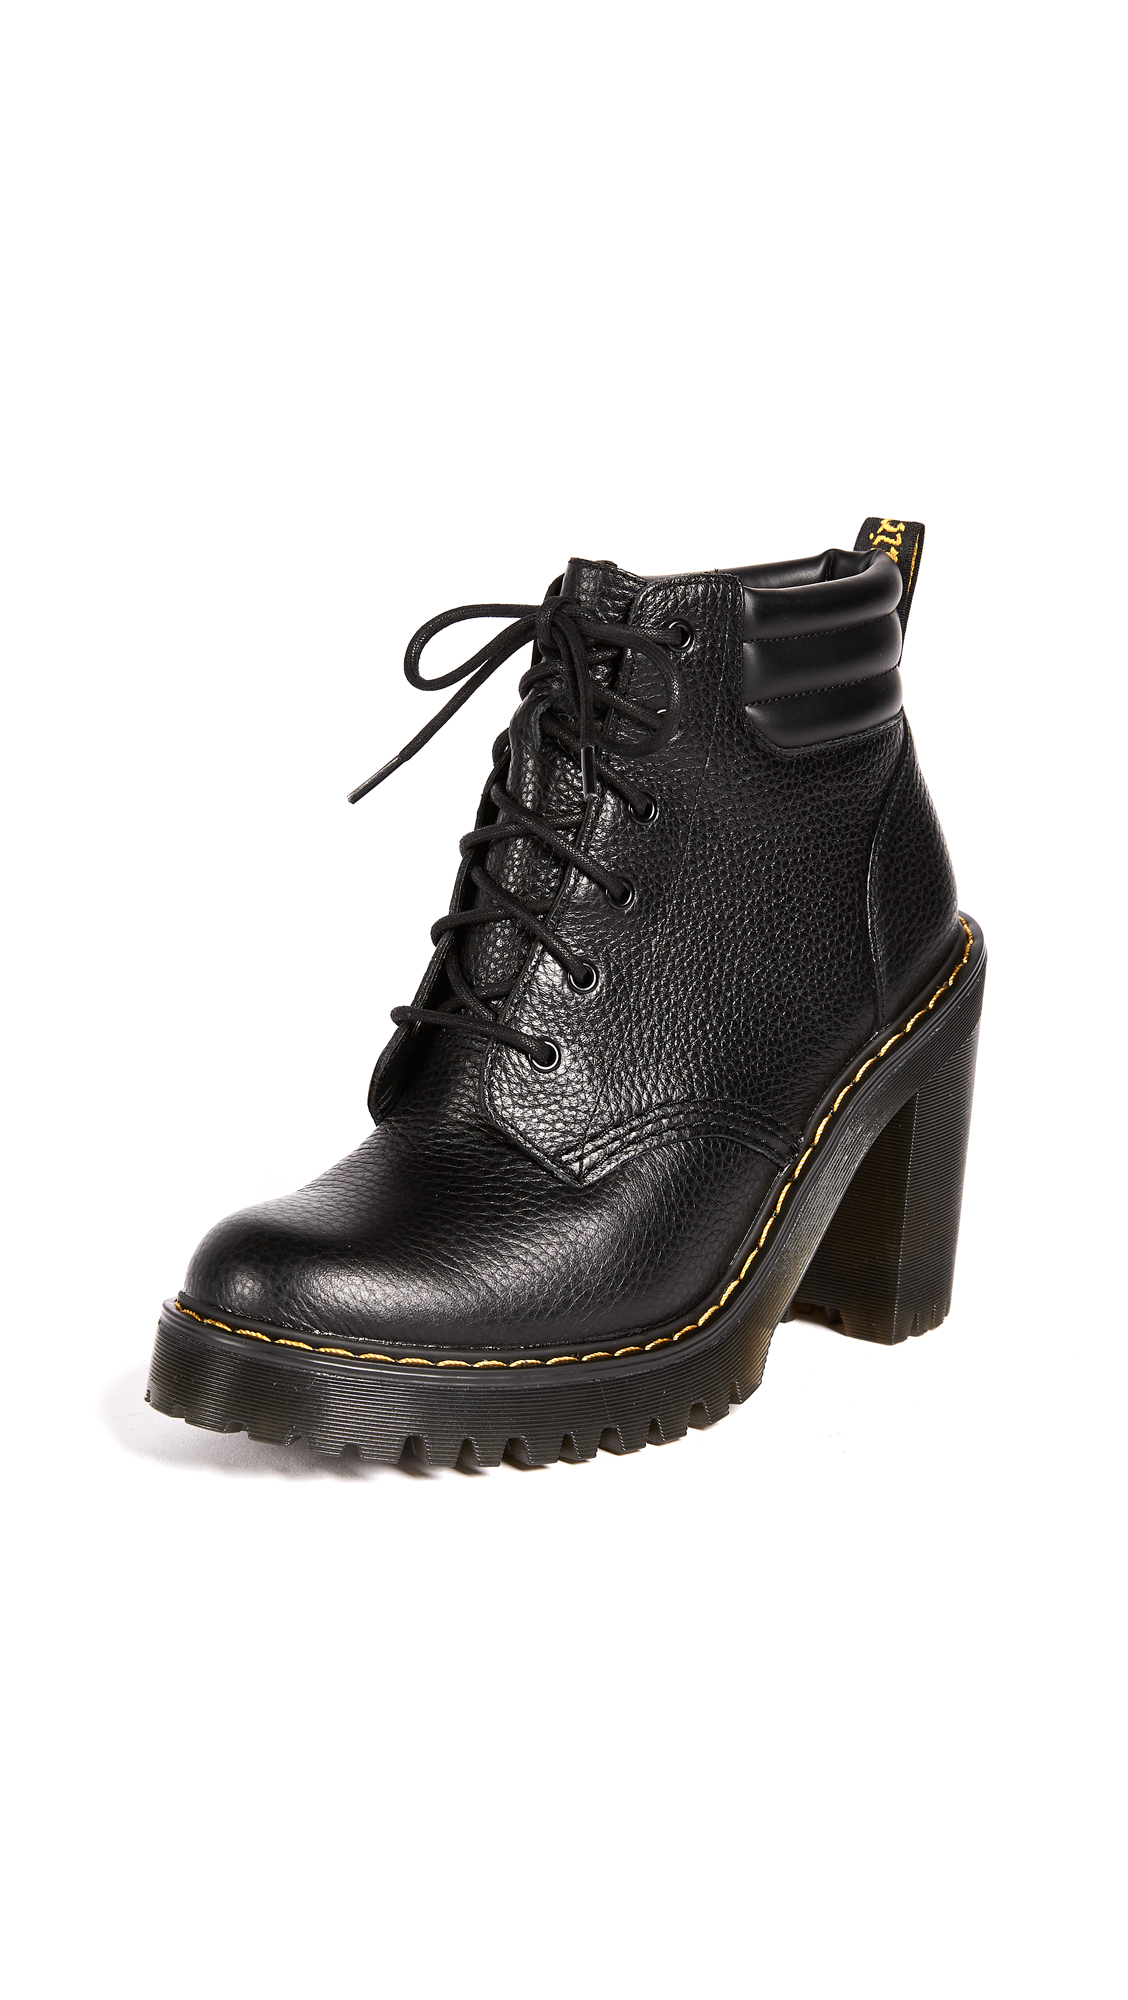 Dr. Martens Persephone 6 Eye Padded Collar Boots - Black